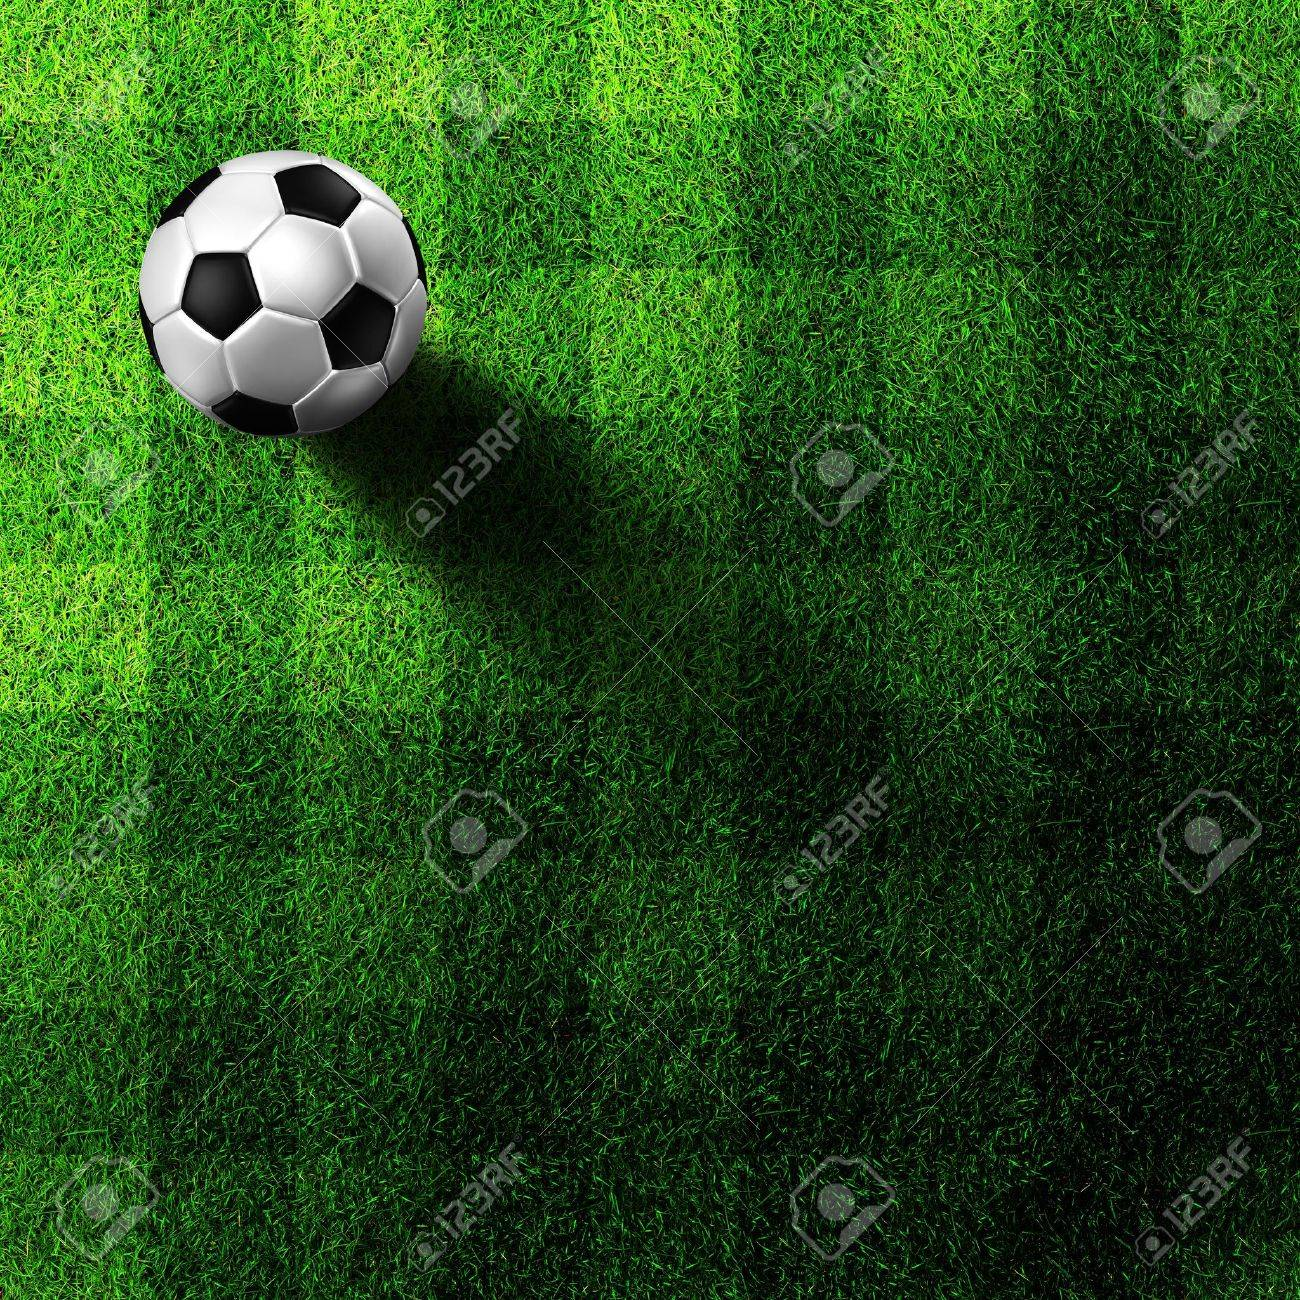 soccer football on grass field Stock Photo - 9647939